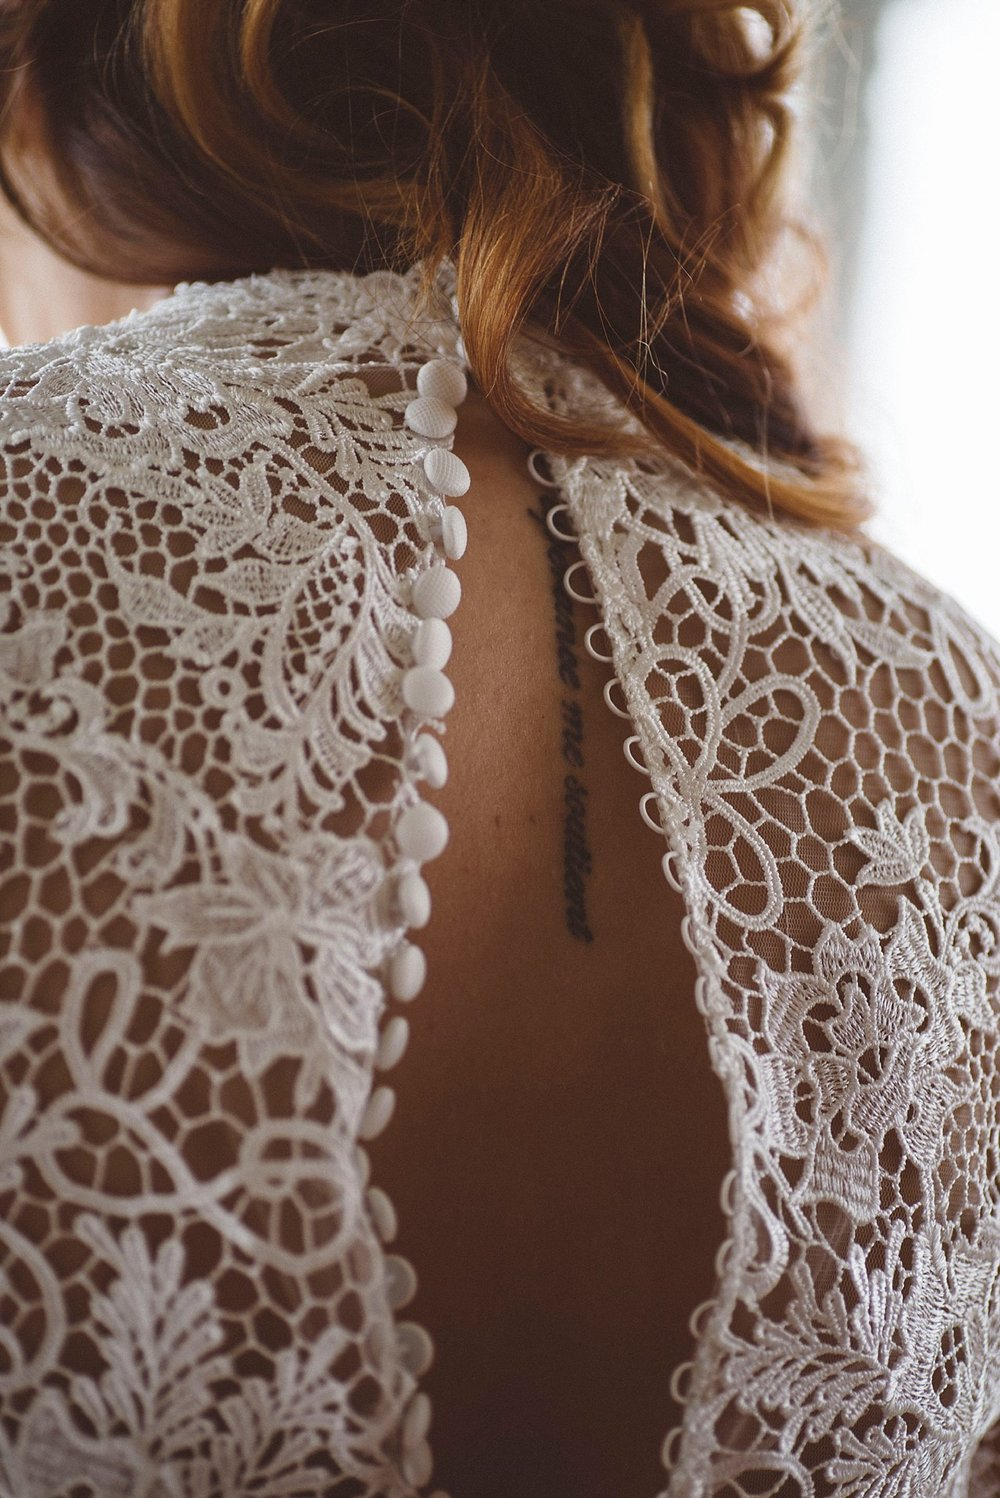 Lace detail Pittsburgh wedding photographer